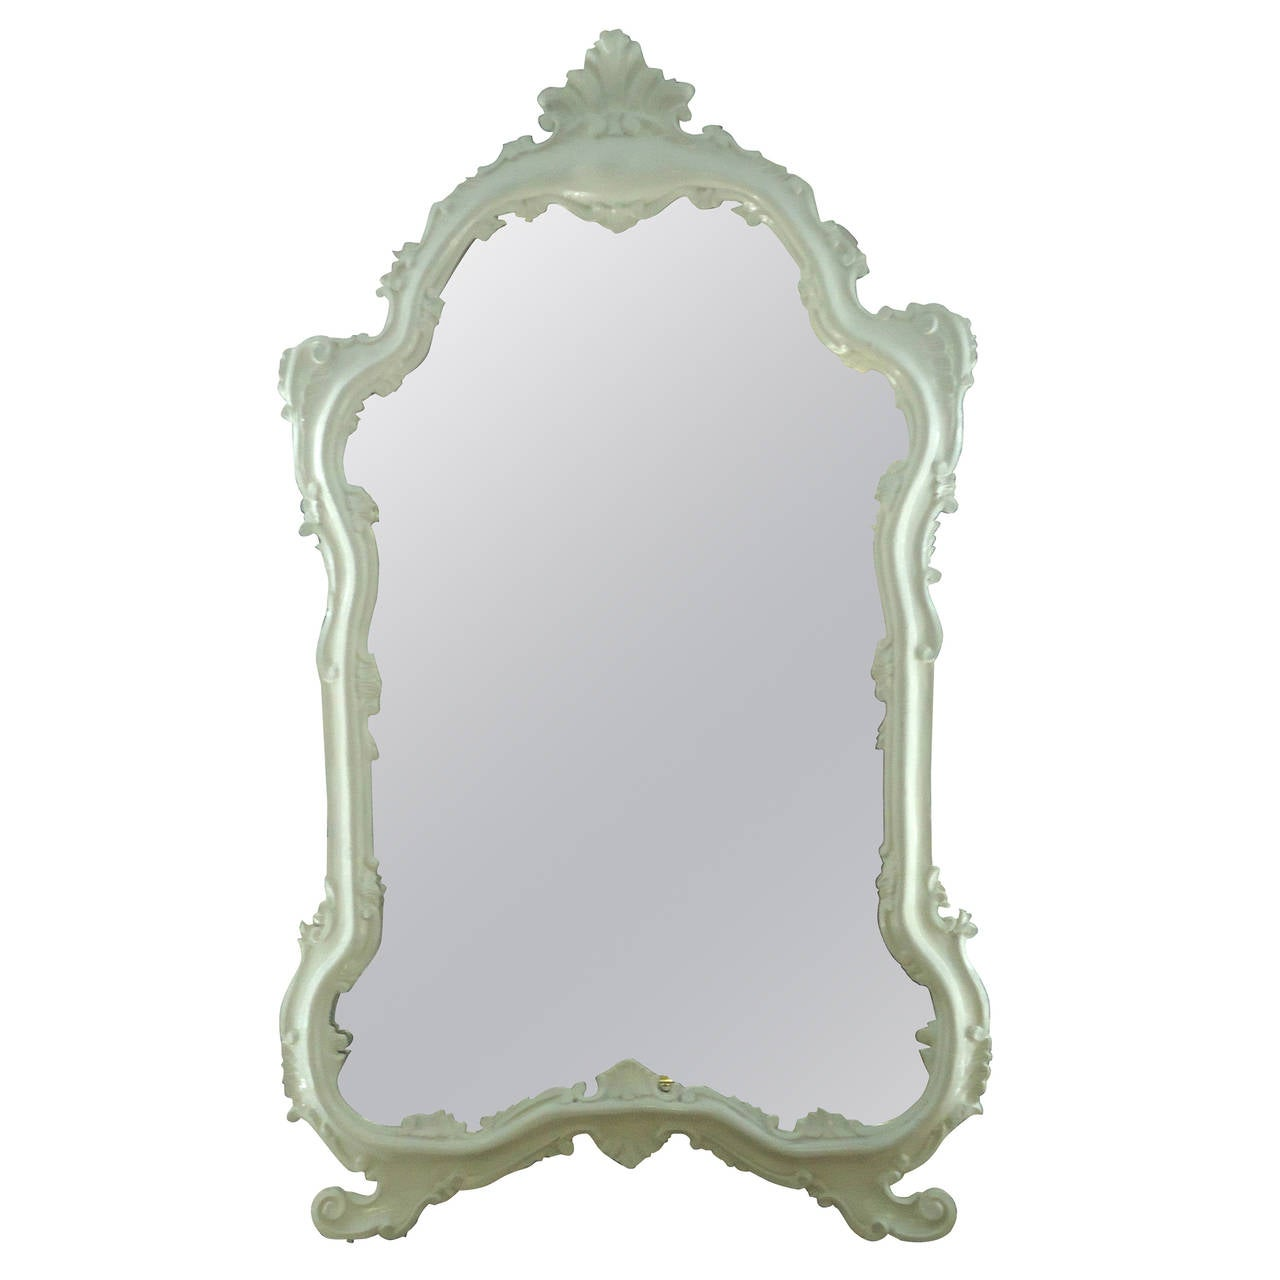 White lacquered venetian style vintage mirror at 1stdibs for Old style mirror